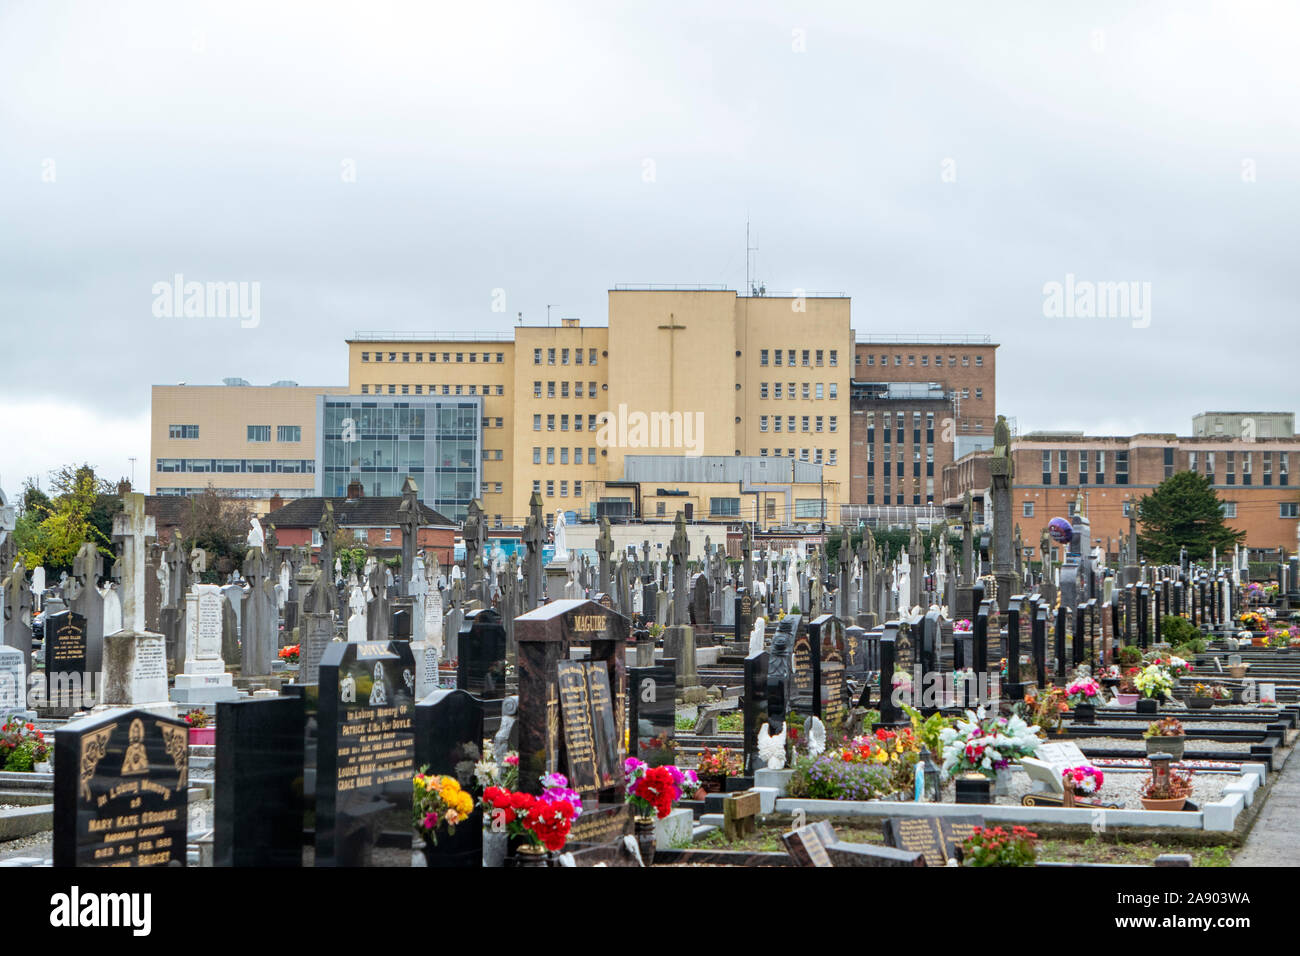 Saint Peter's Cemetery in Drogheda Ireland, with the Lourdes Hospital in the background Stock Photo